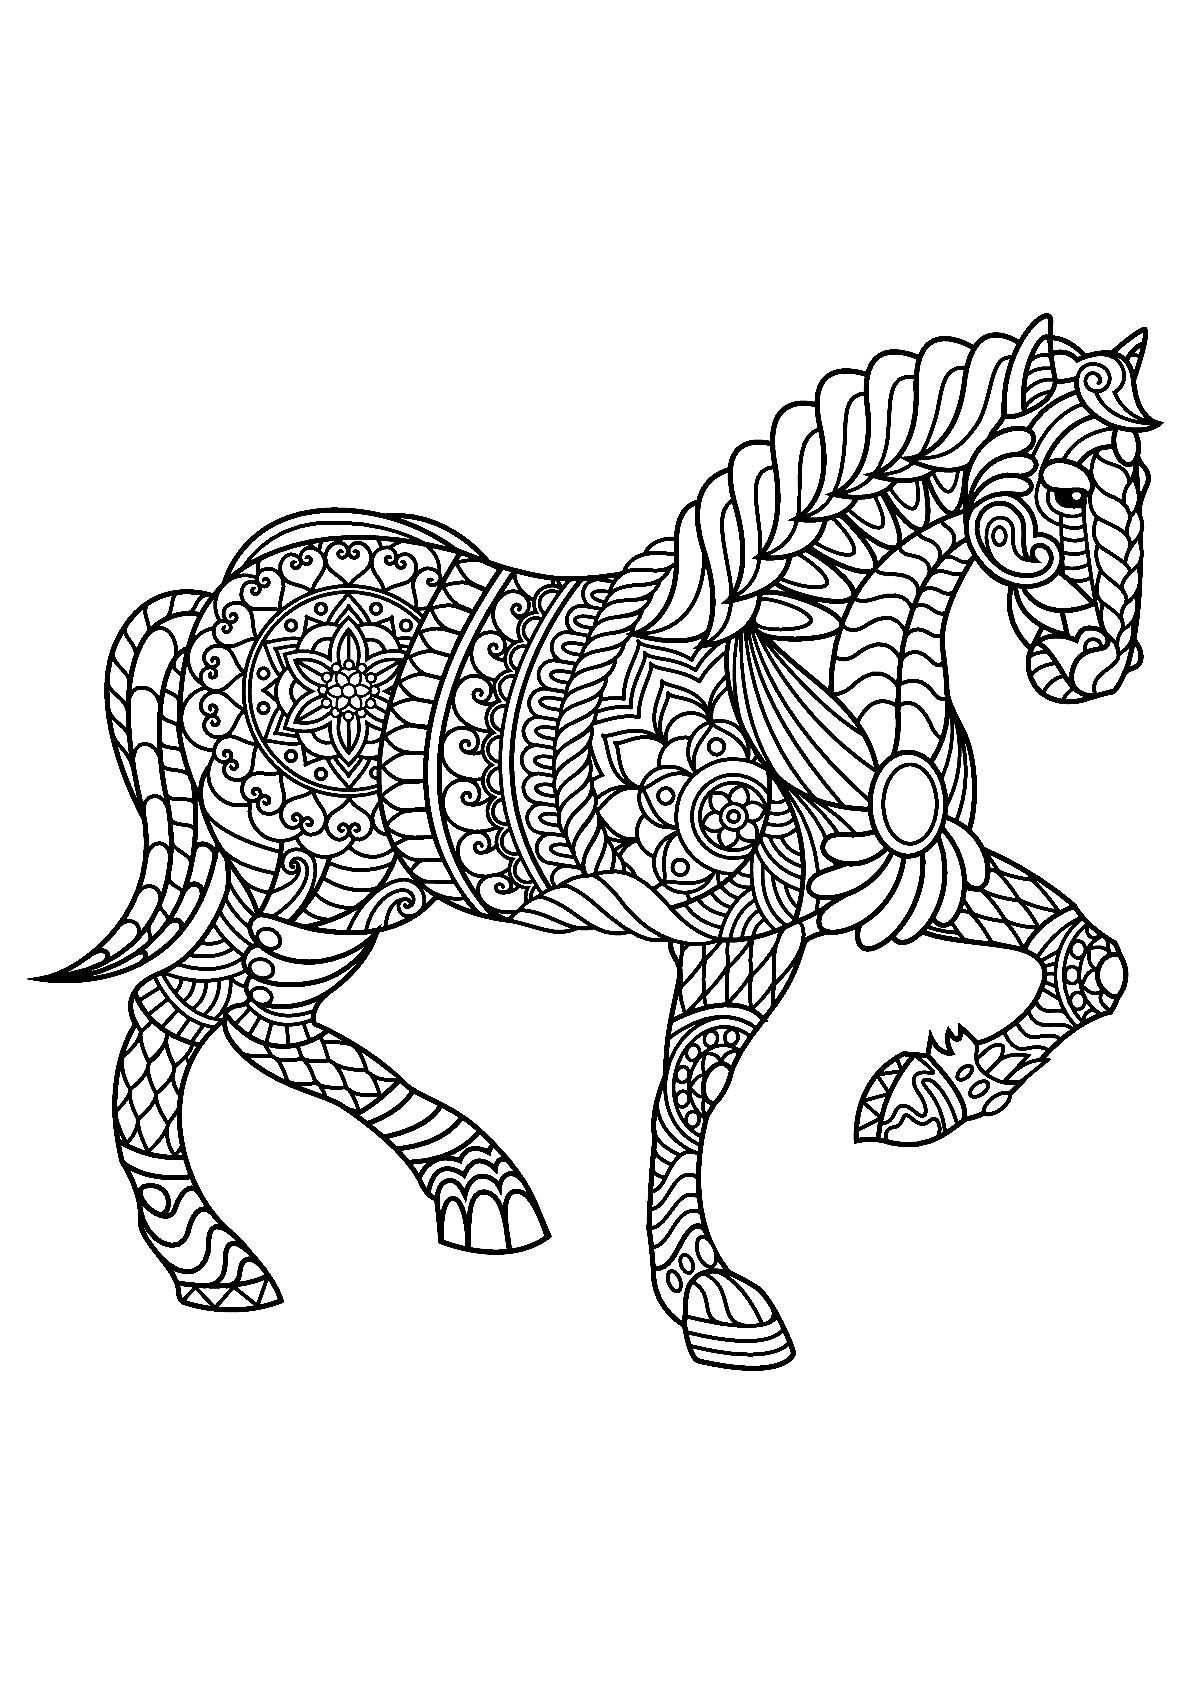 10 New Ideas Free Horse Coloring Pages In 2021 Horse Coloring Horse Coloring Books Horse Coloring Pages [ 1684 x 1191 Pixel ]